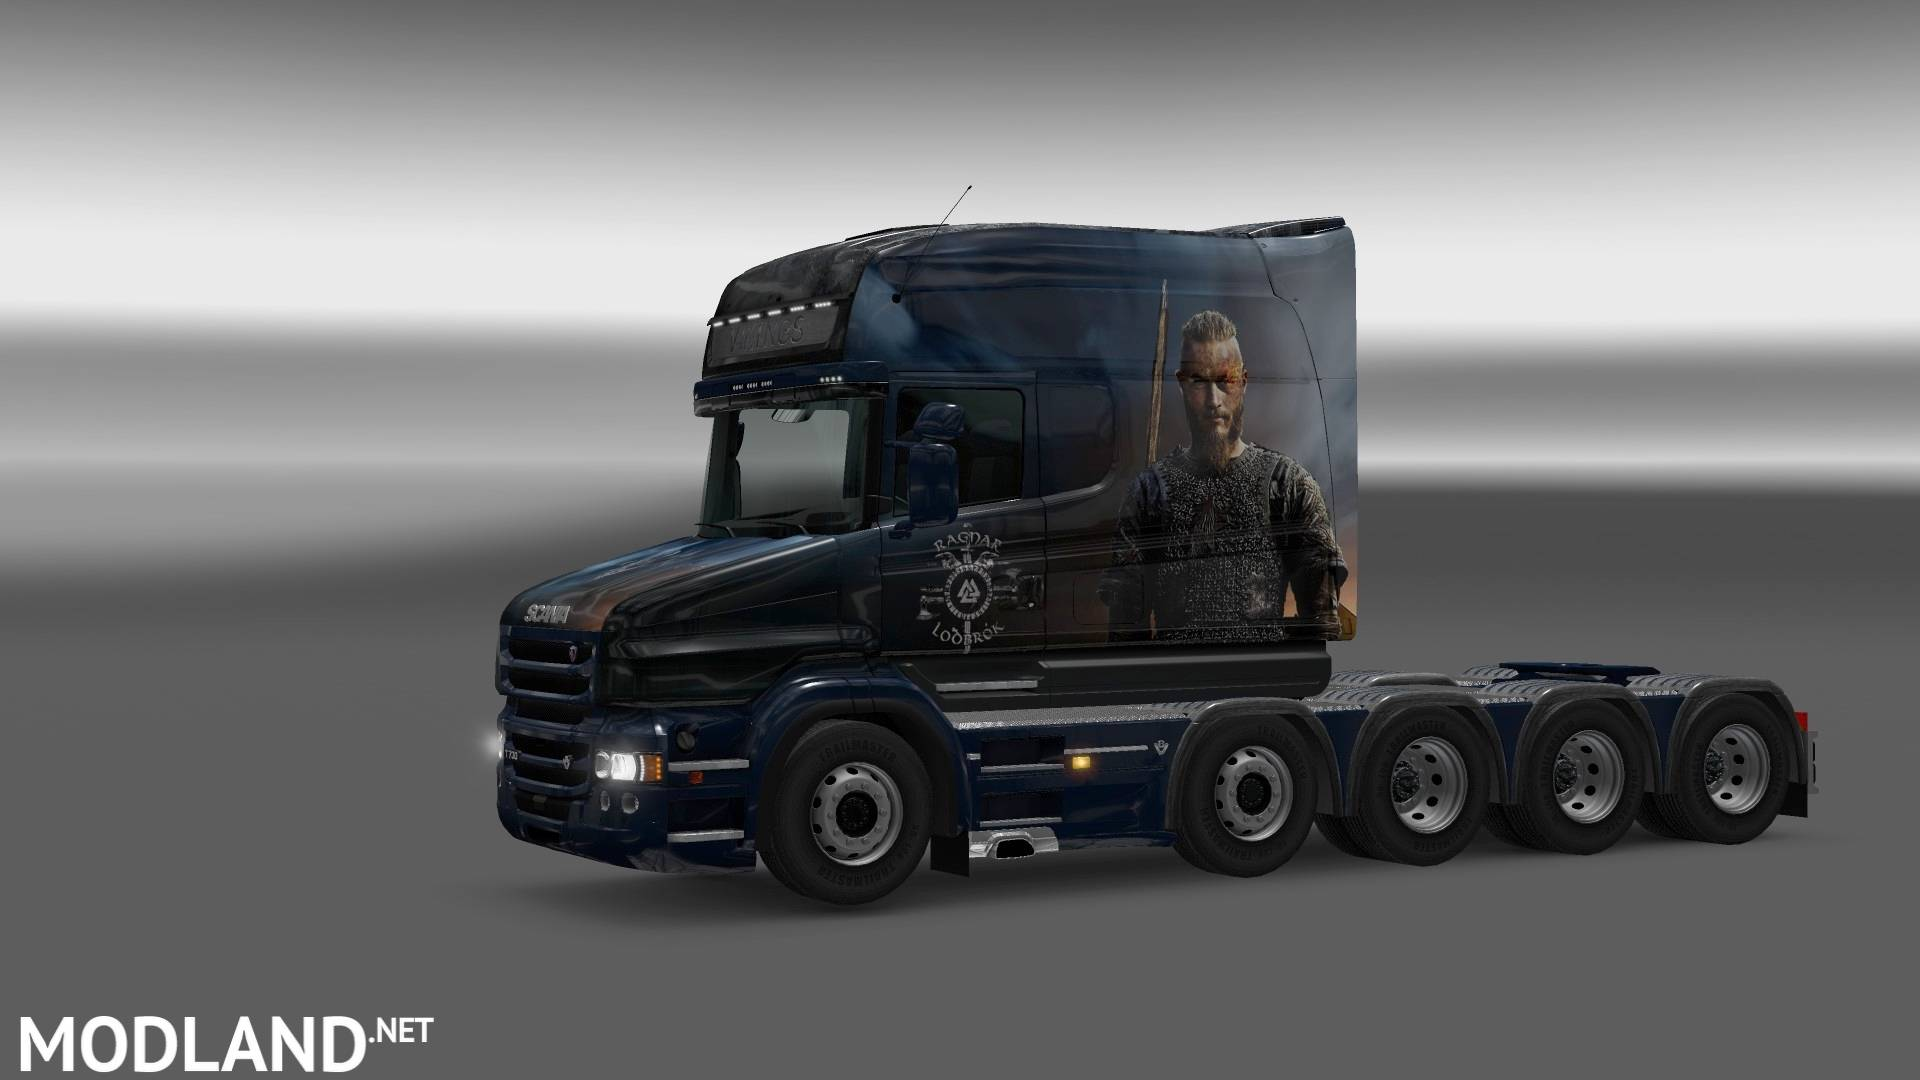 Skin Vinkings Scania T RJL Longline mod for ETS 2